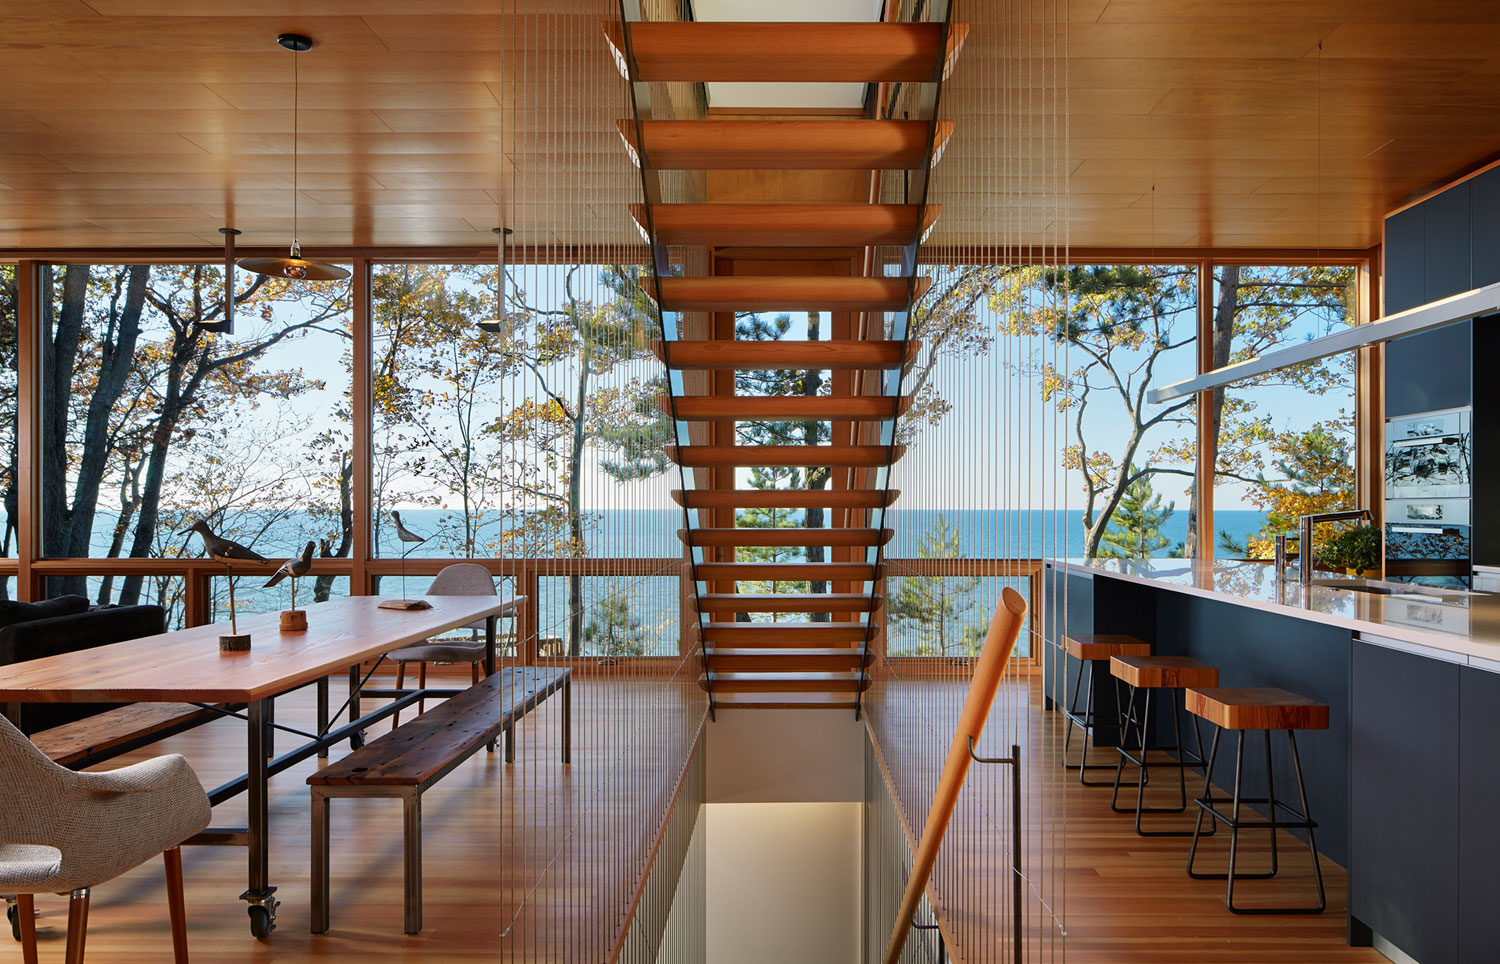 Tranquility And Simplicity Core Elements Of Suns End Retreat In Harbert Michigan By Wheeler Kearns Architects